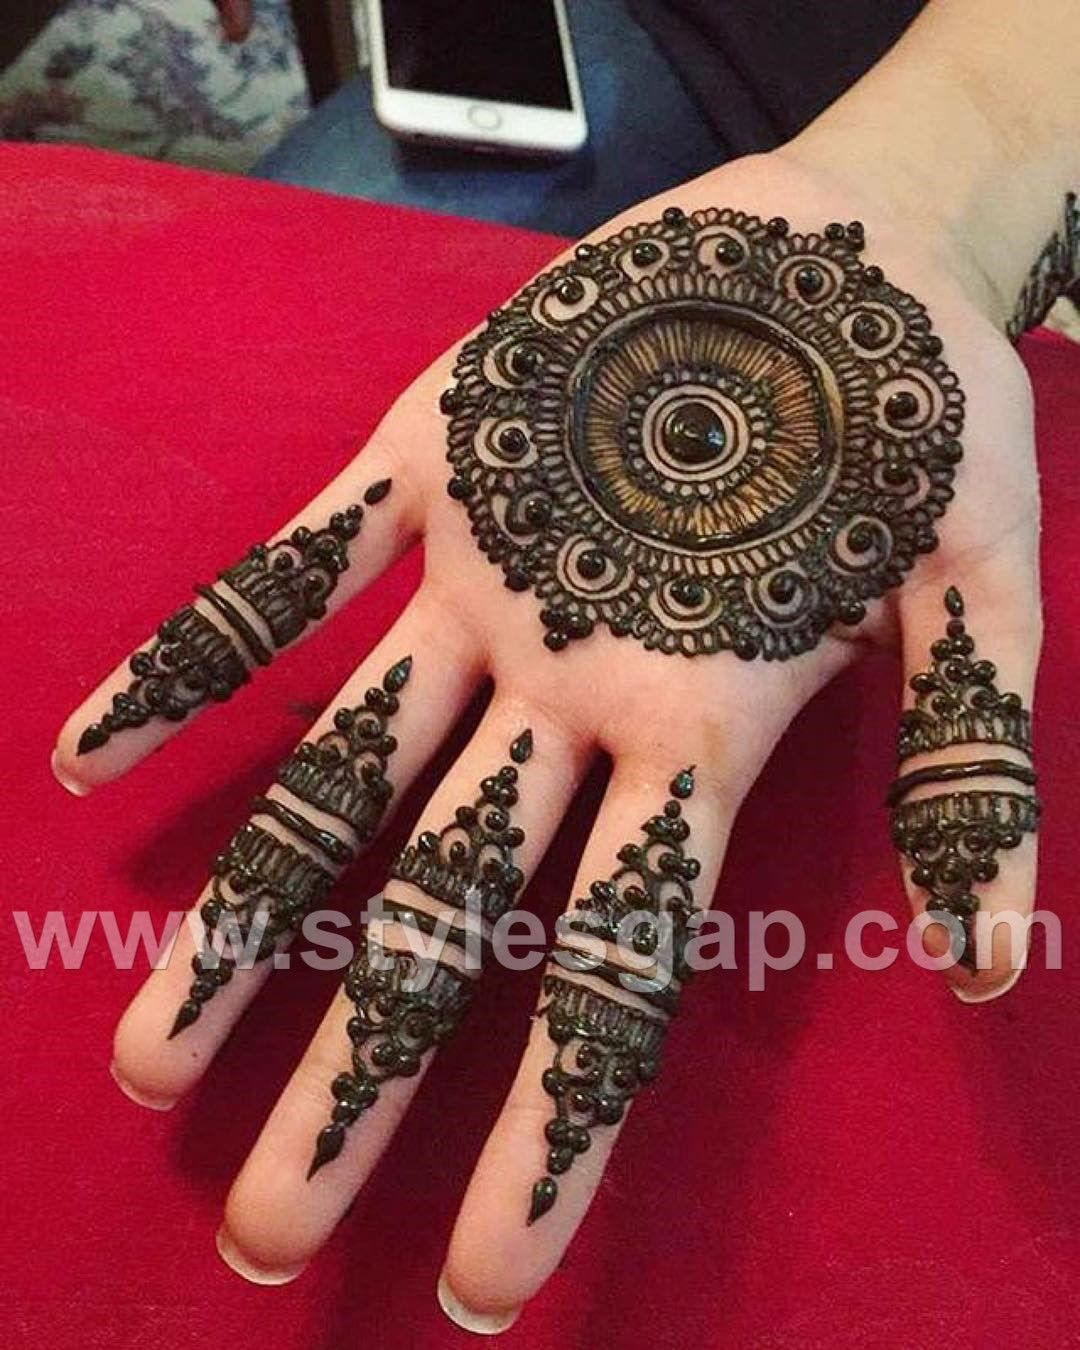 wedding mehendi design 2021